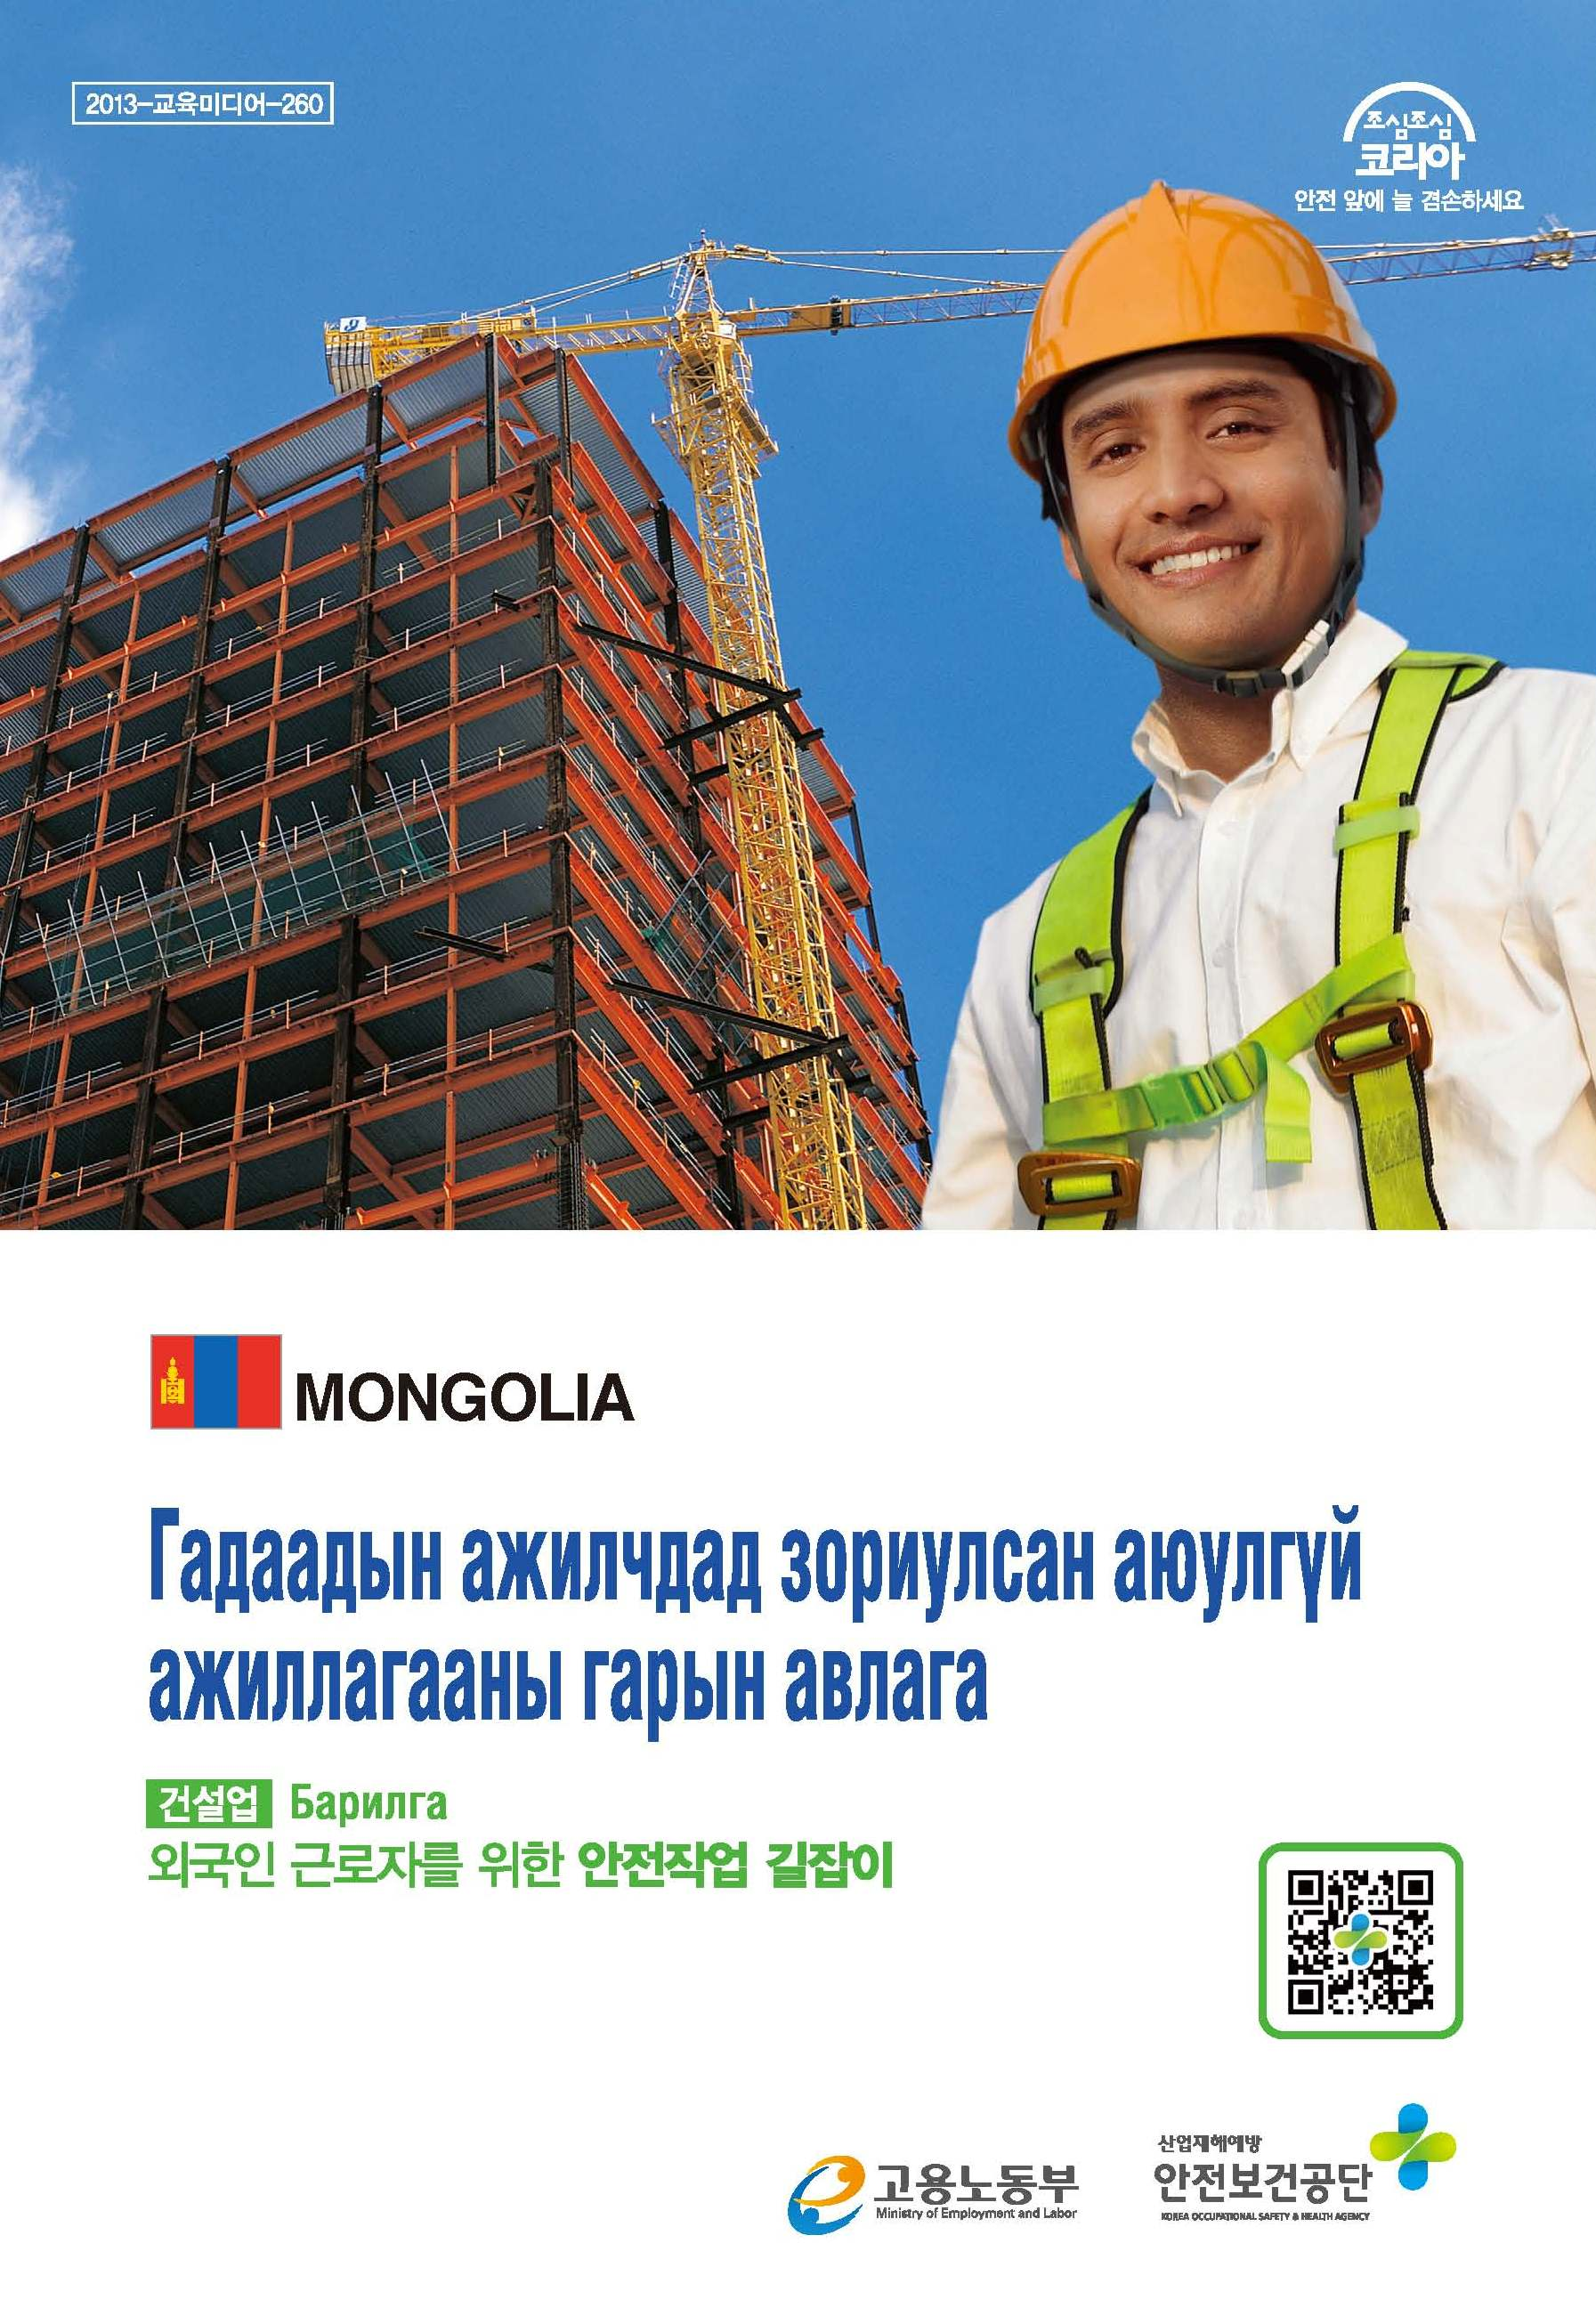 (Construction Industry) Safety guide for foreign workers (Mongolian) (건설업)외국인근로자를 위한 안전작업길잡이(몽골)